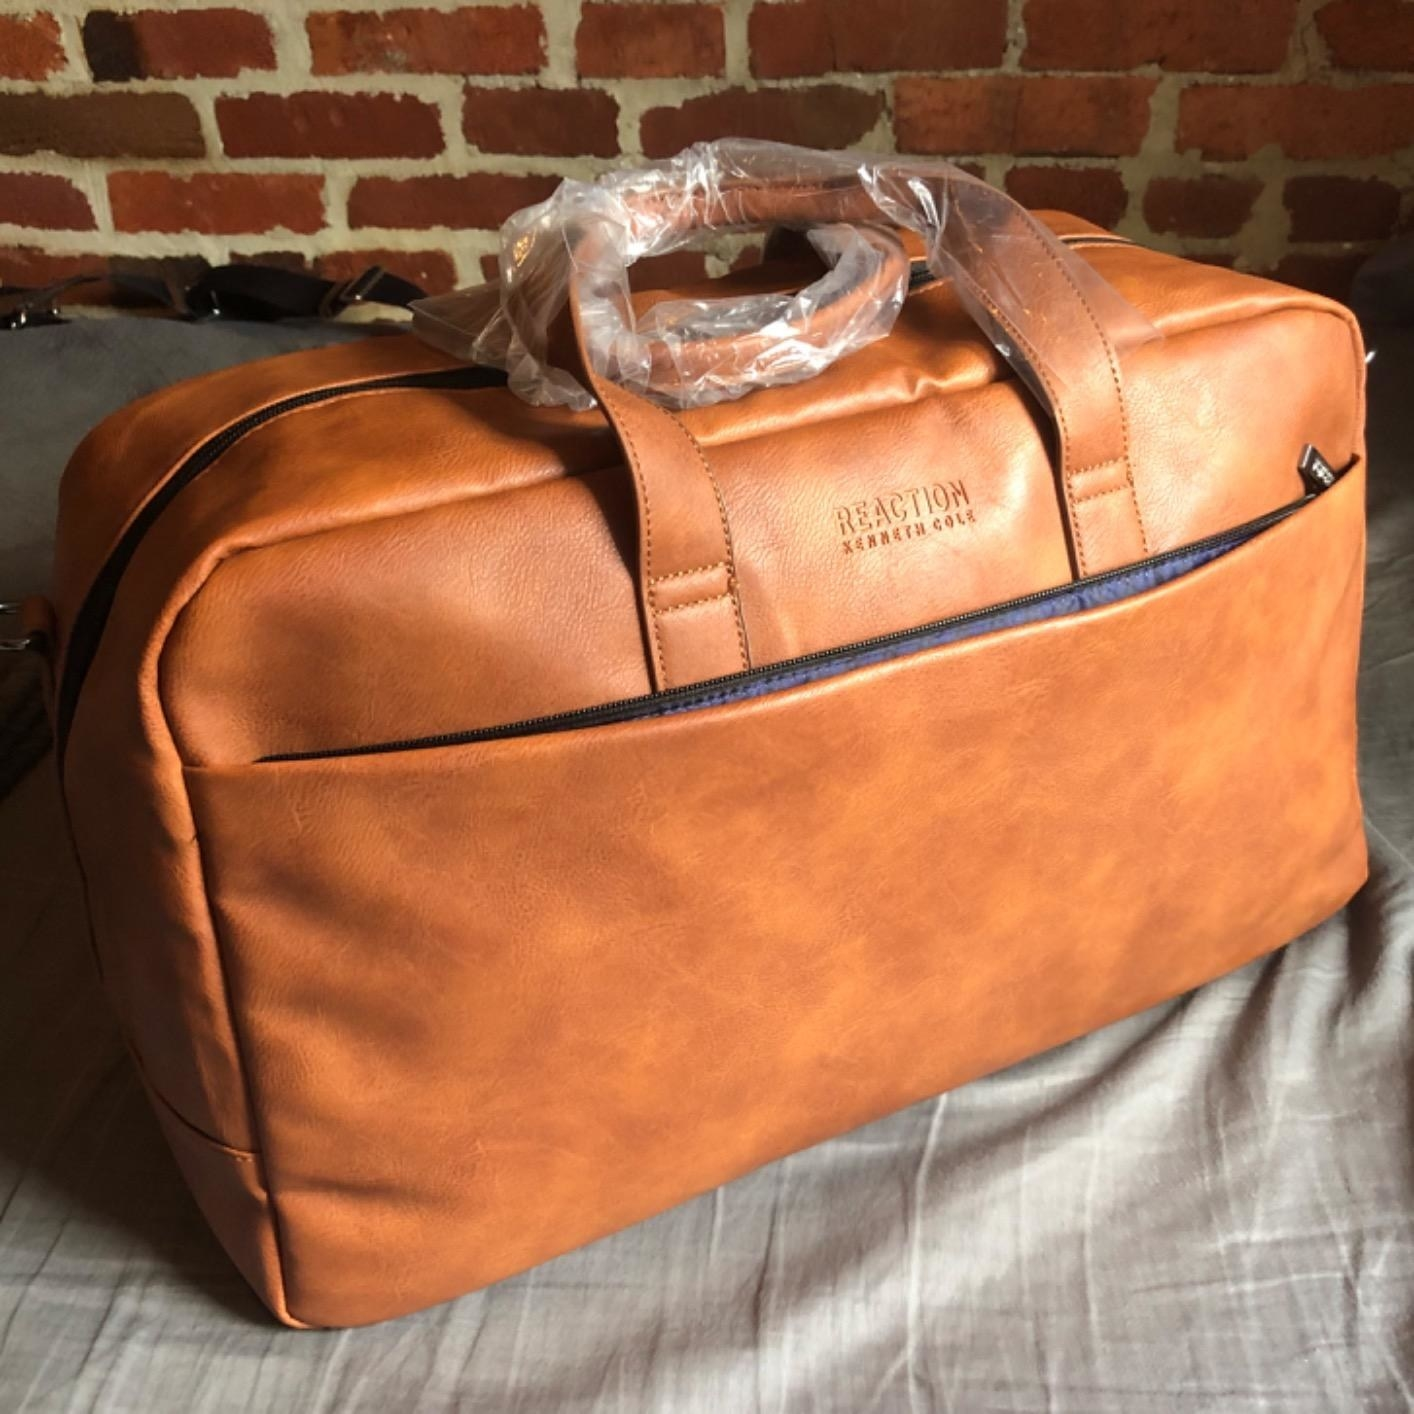 A cognac vegan leather bag with a pocket in the front